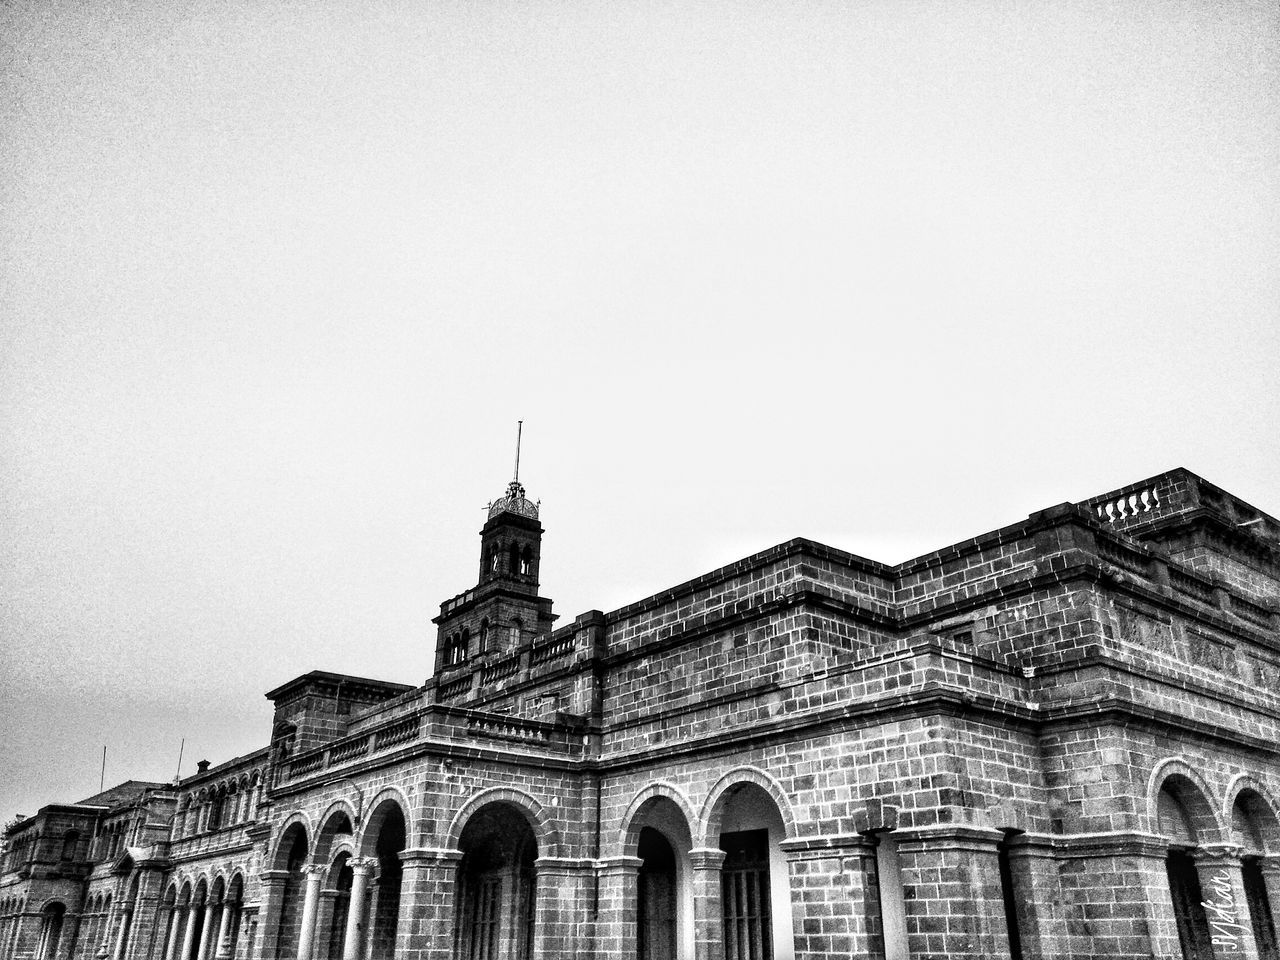 Architecture Building Exterior Built Structure Travel Destinations City Politics And Government Travel Sky Government Outdoors No People Clock Tower Day University Campus University University Of Pune Oldbuilding